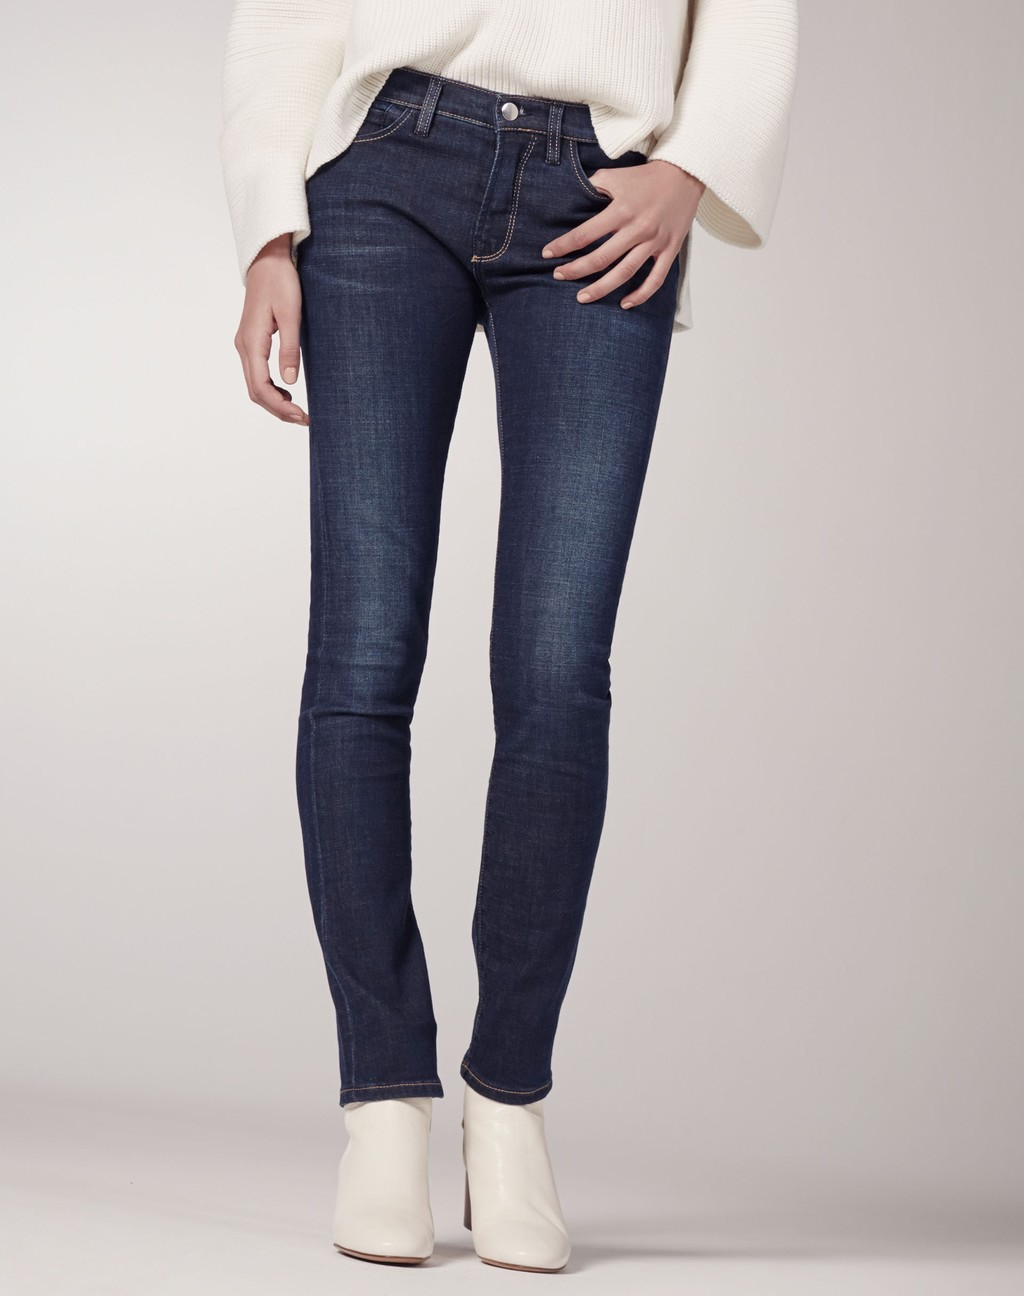 Straight Fit Jean Deep Blue - style: straight leg; length: standard; pattern: plain; pocket detail: traditional 5 pocket; waist: mid/regular rise; predominant colour: navy; occasions: casual; fibres: cotton - stretch; texture group: denim; pattern type: fabric; season: s/s 2016; wardrobe: basic